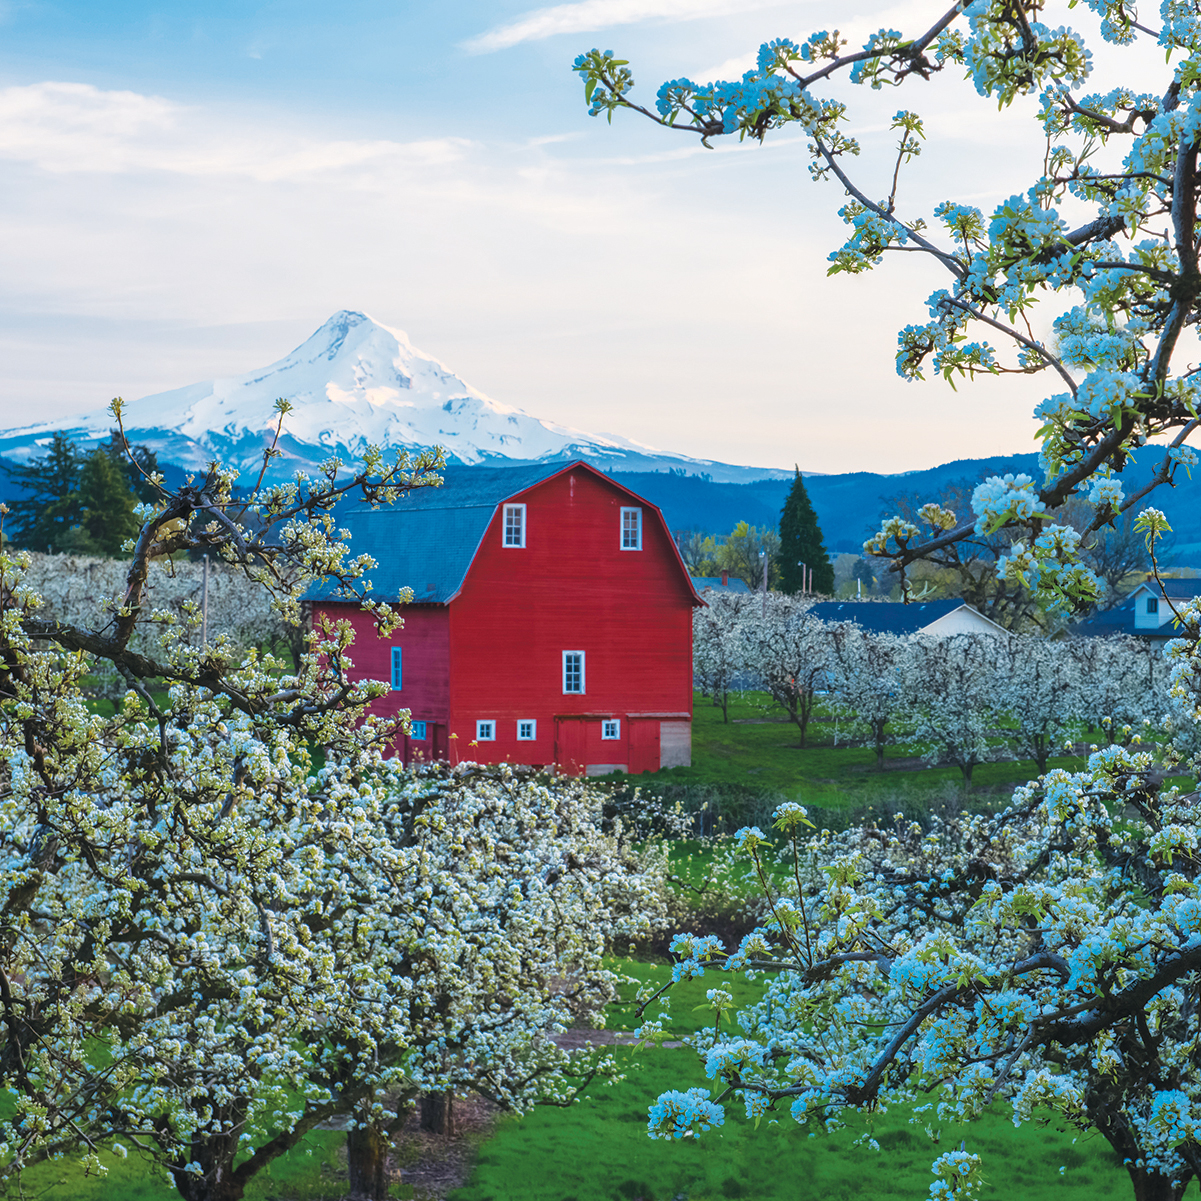 A view of pear tree blossoms, a red barn and Mt. Hood along the Fruit Loop in the Upper Hood River Valley